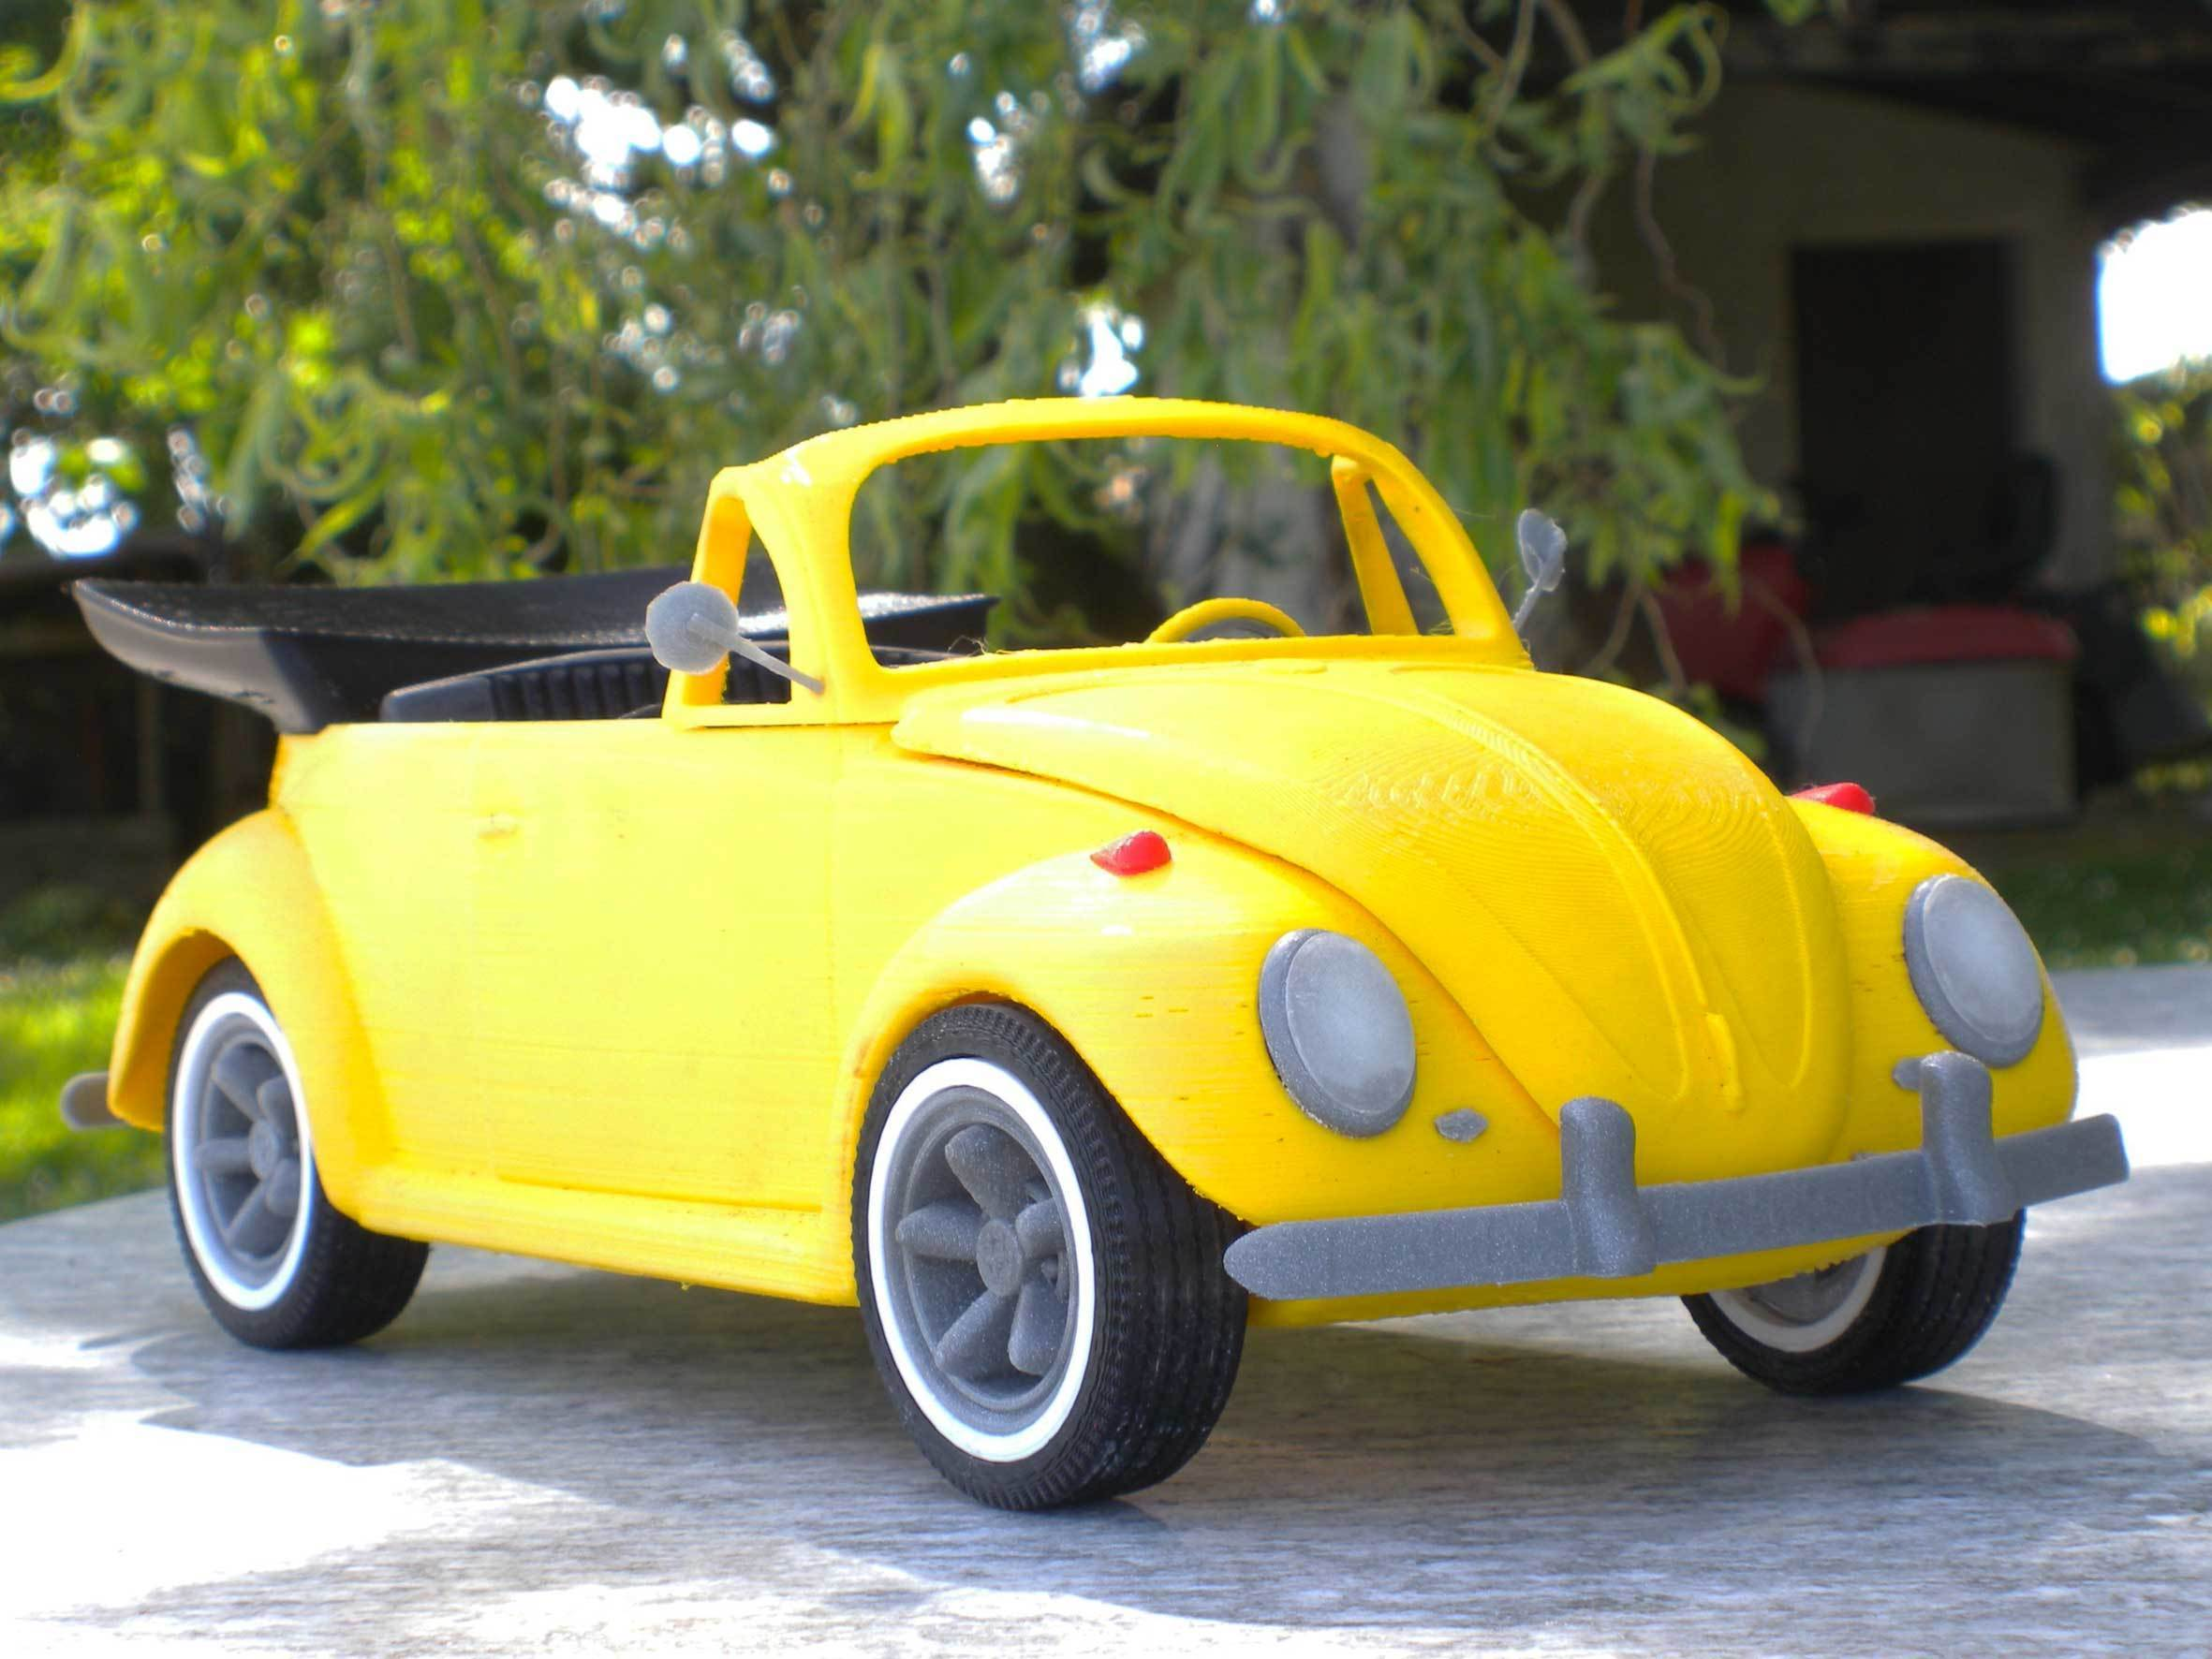 1.jpg Download STL file Beetle cabriolet • Template to 3D print, MaoCasella